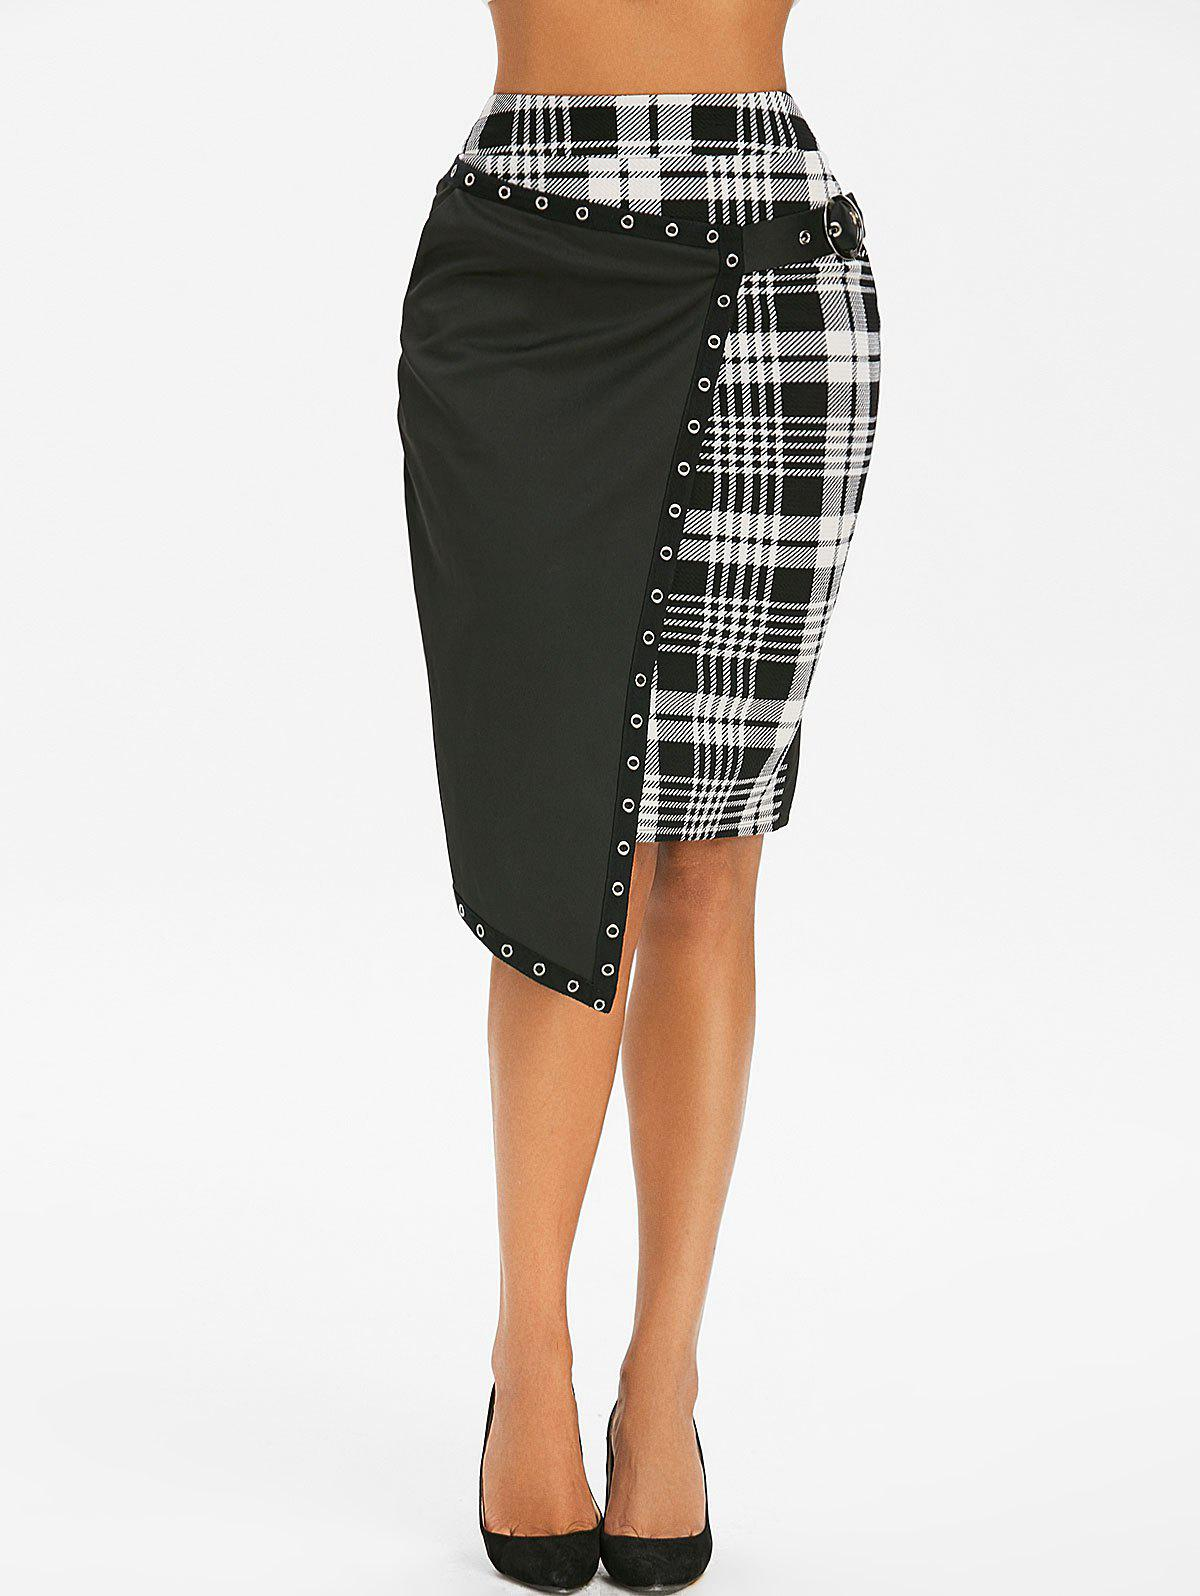 Gothic Plaid Asymmetric Eyelet Buckle Skirt - BLACK 2XL